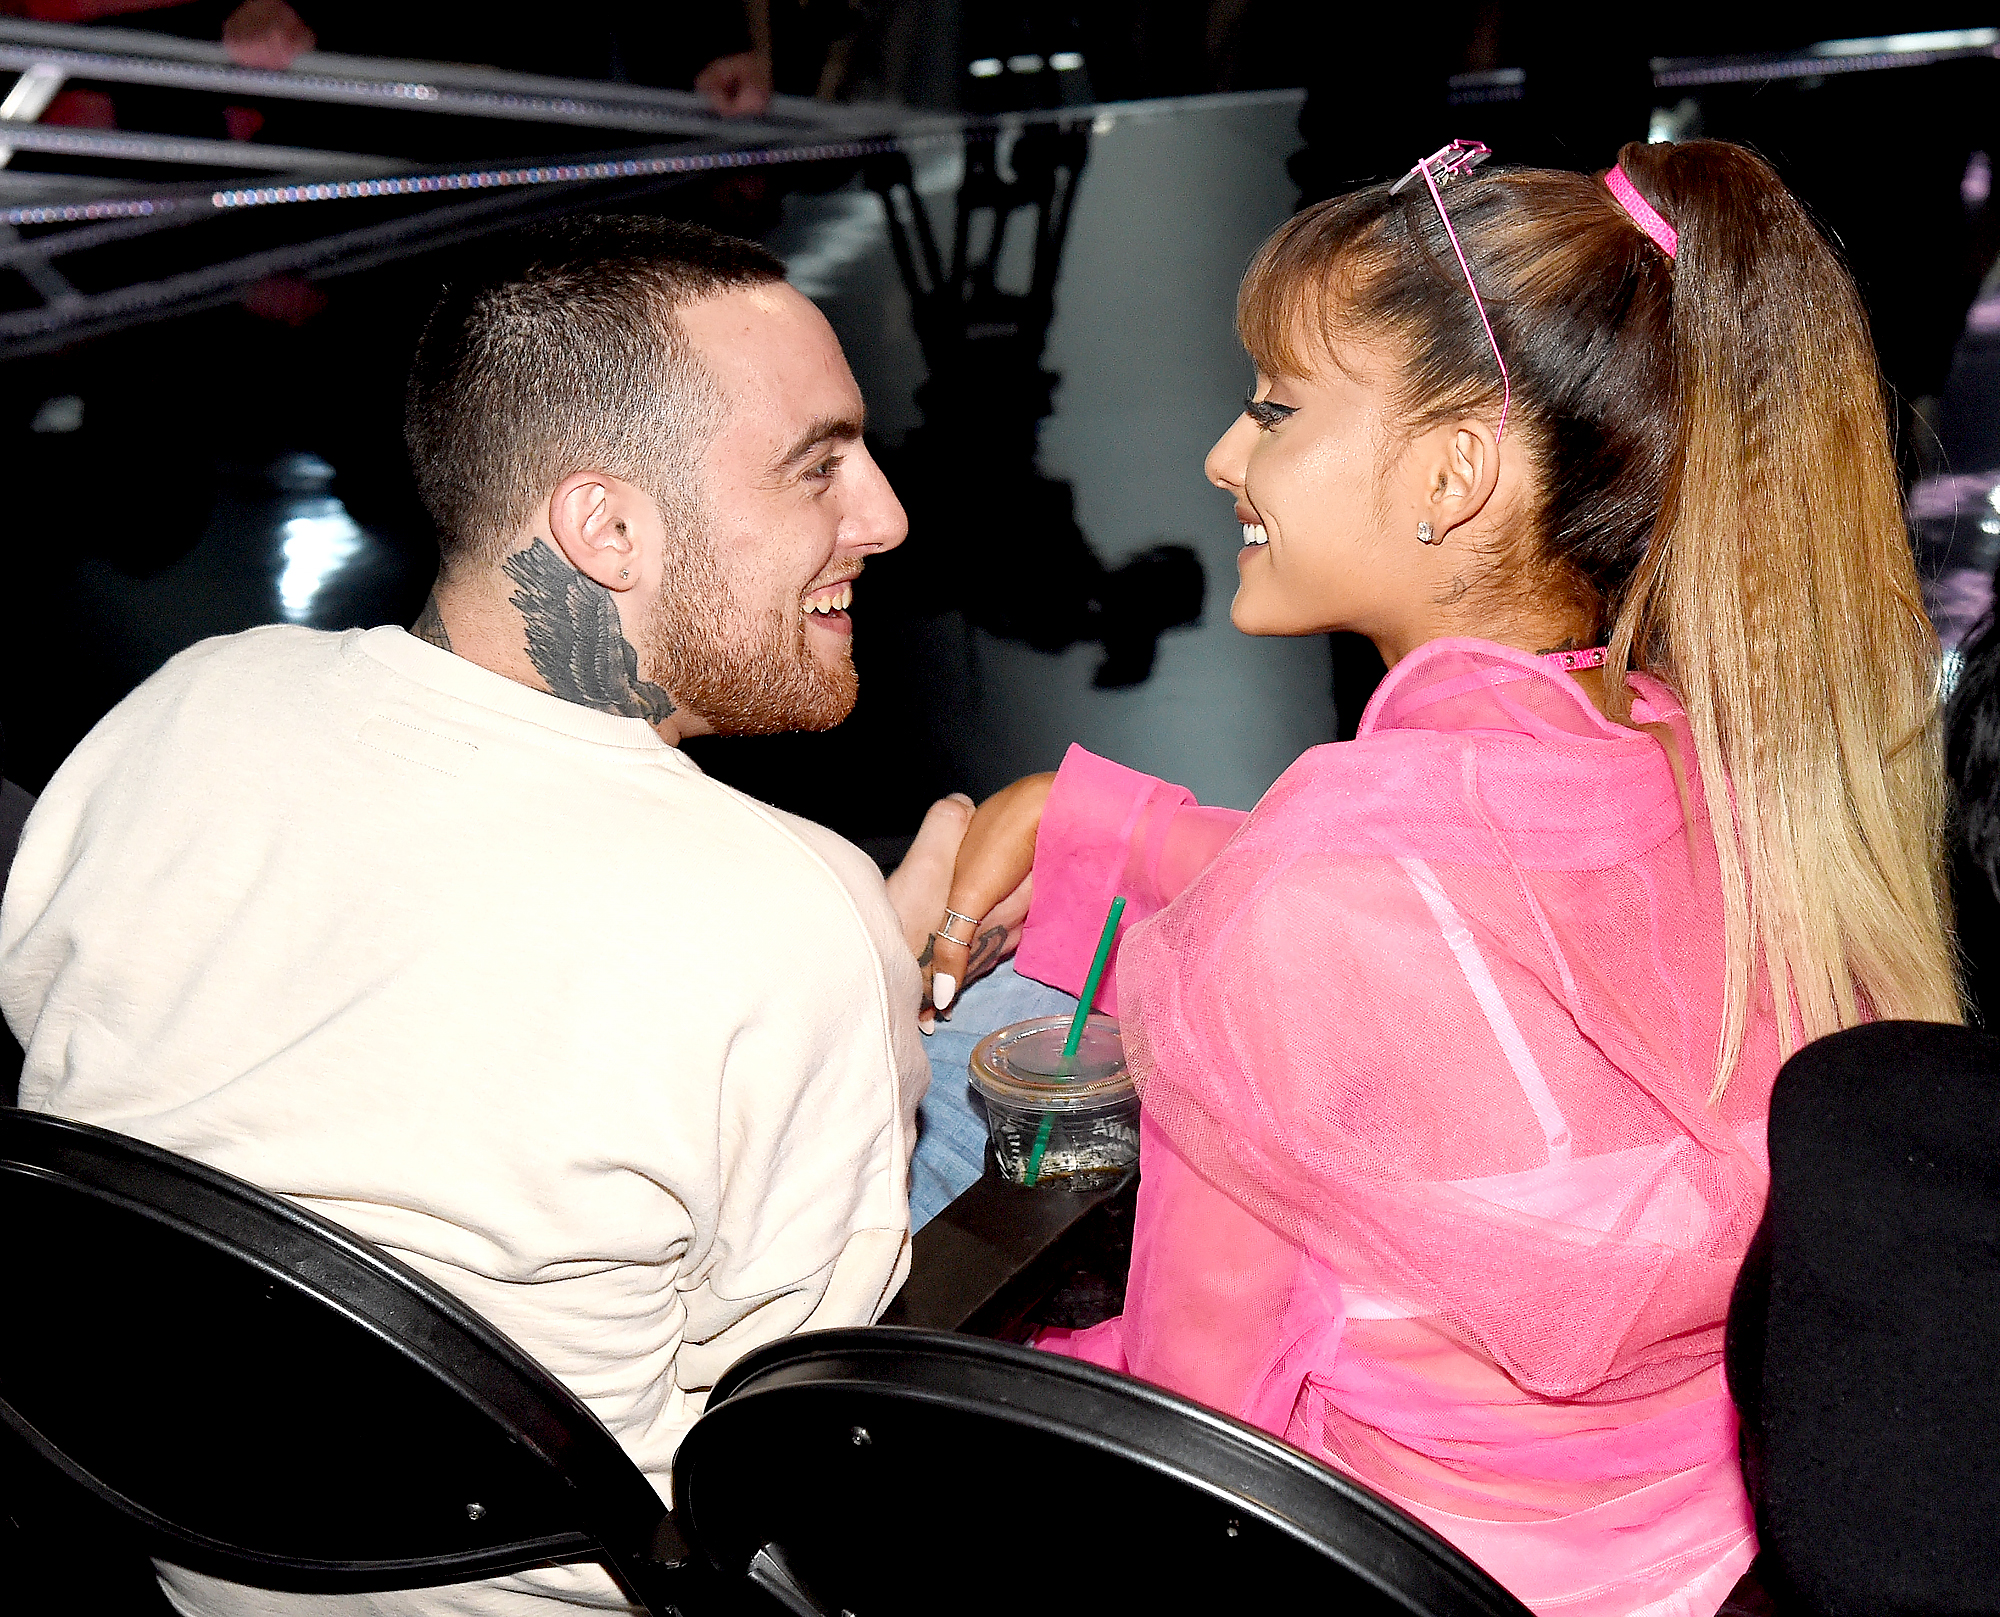 mac-miller-ariana-grande - Mac Miller and Ariana Grande share a moment in the audience during the 2016 MTV Video Music Awards at Madison Square Garden on August 28, 2016 in New York City.